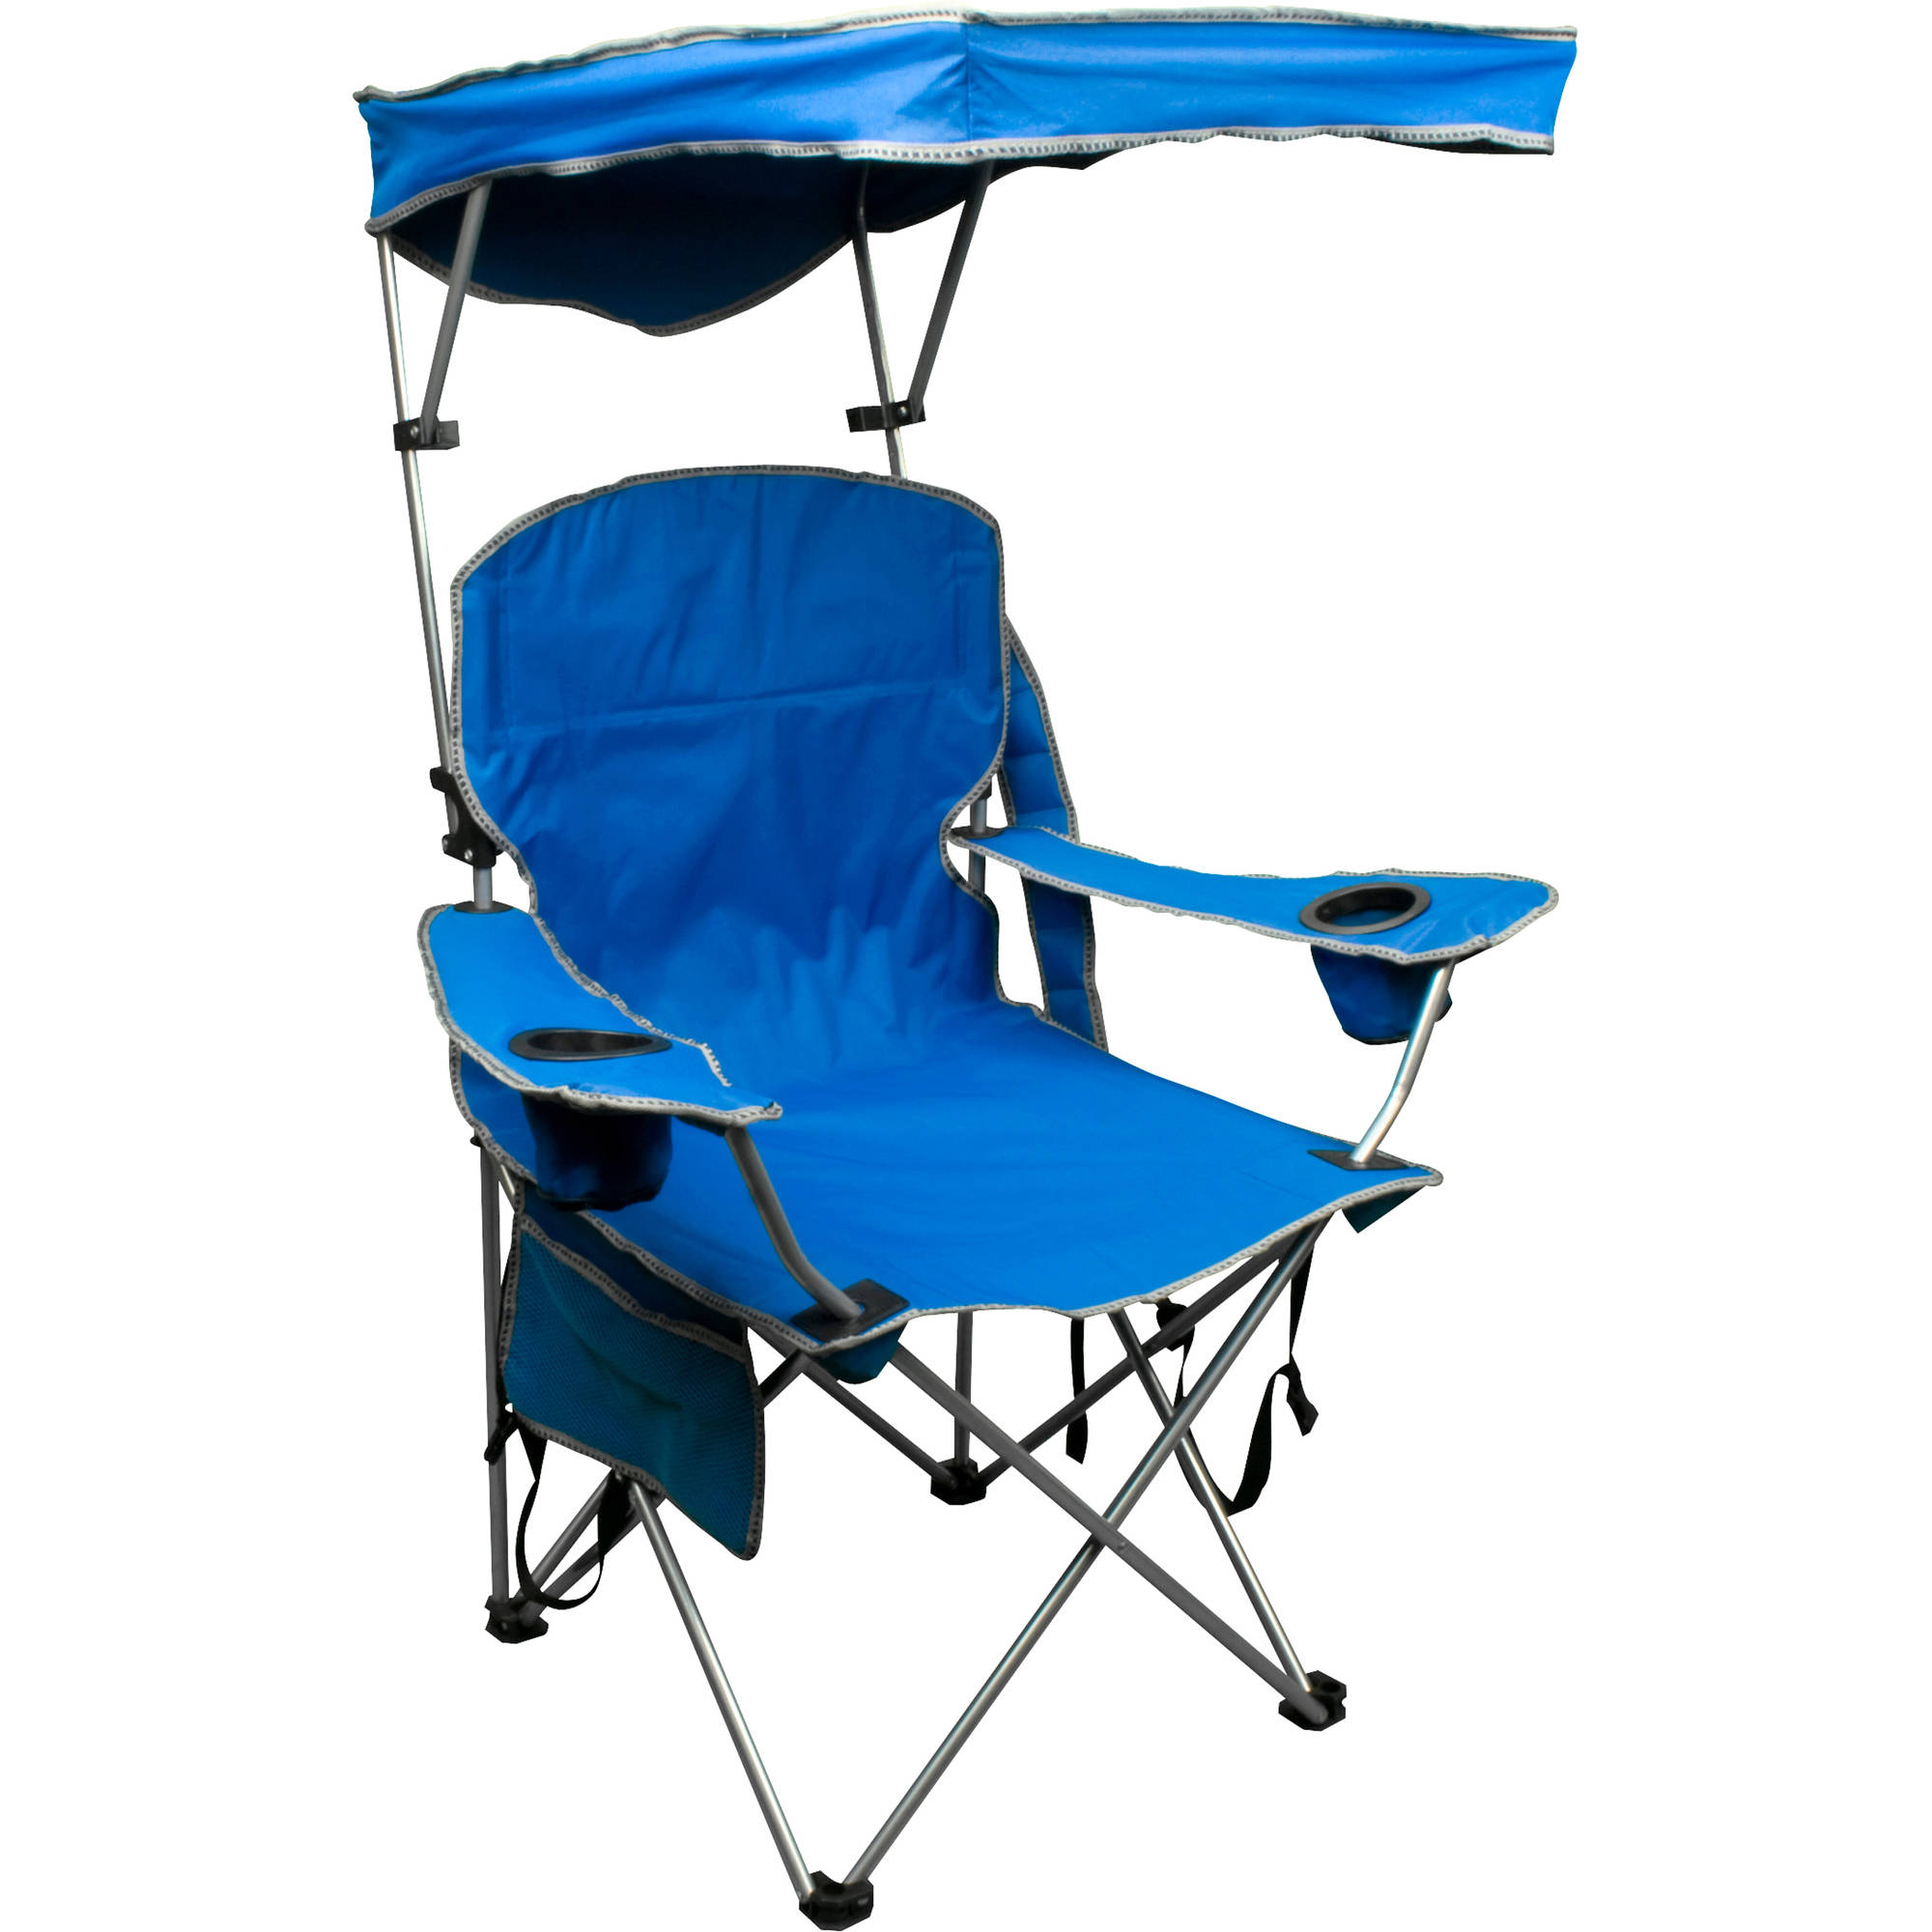 chair with shade canopy pillow for bed target quik adjustable folding camp walmart com